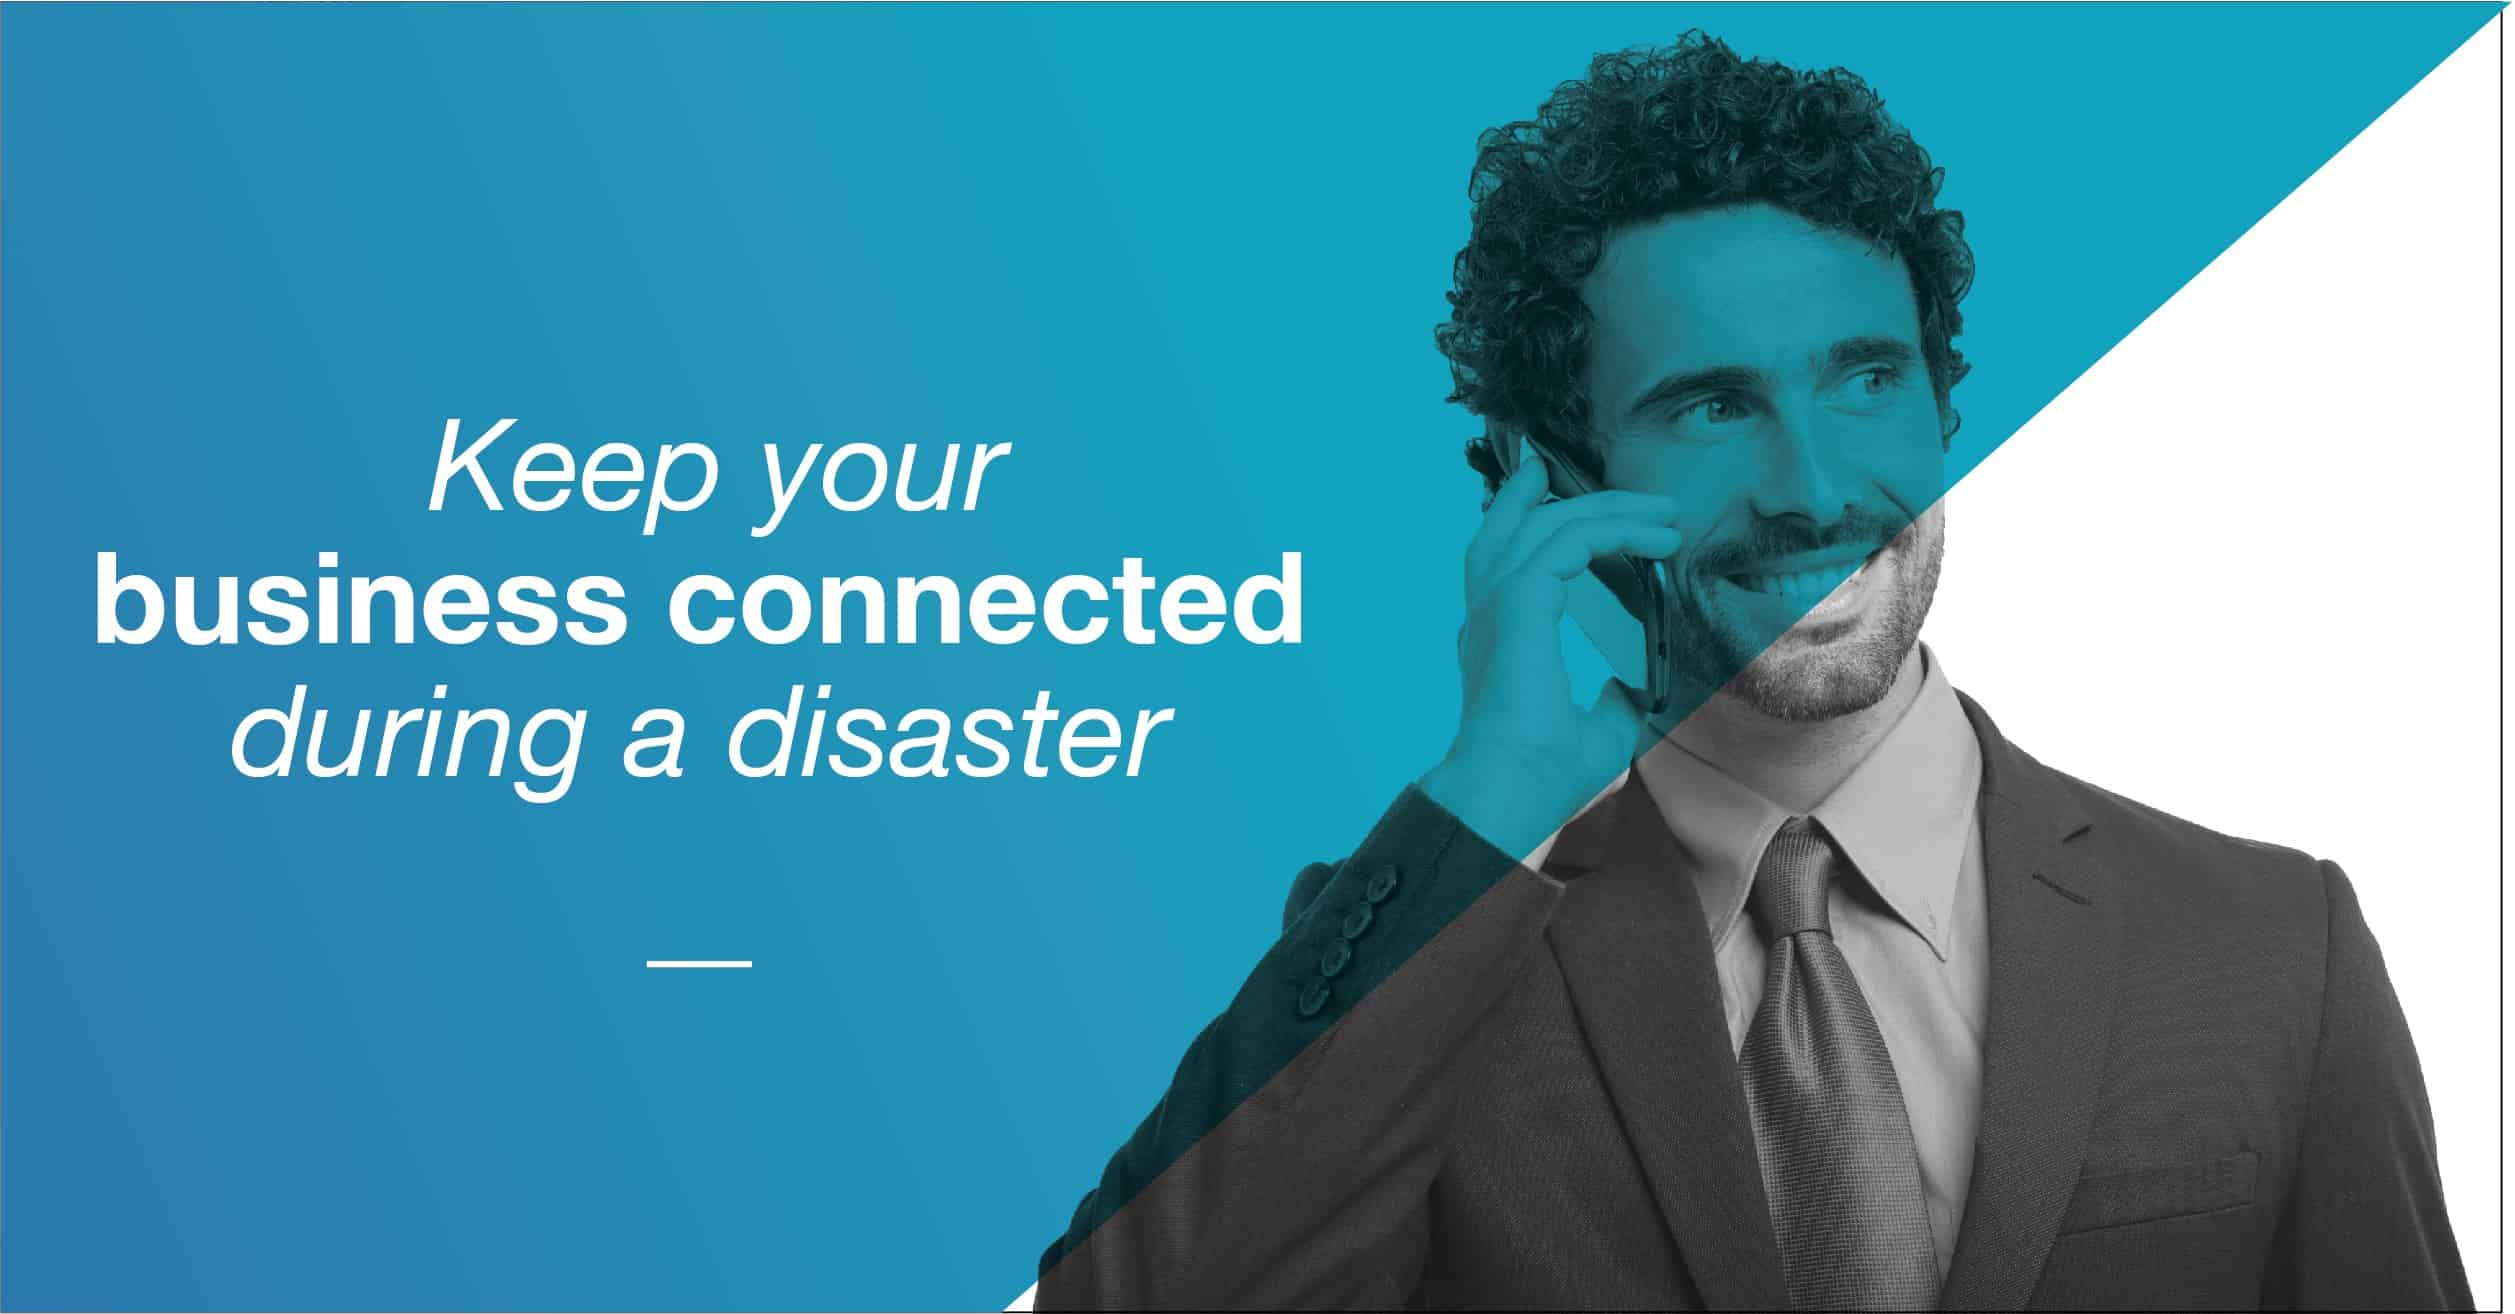 business connected during a disaster